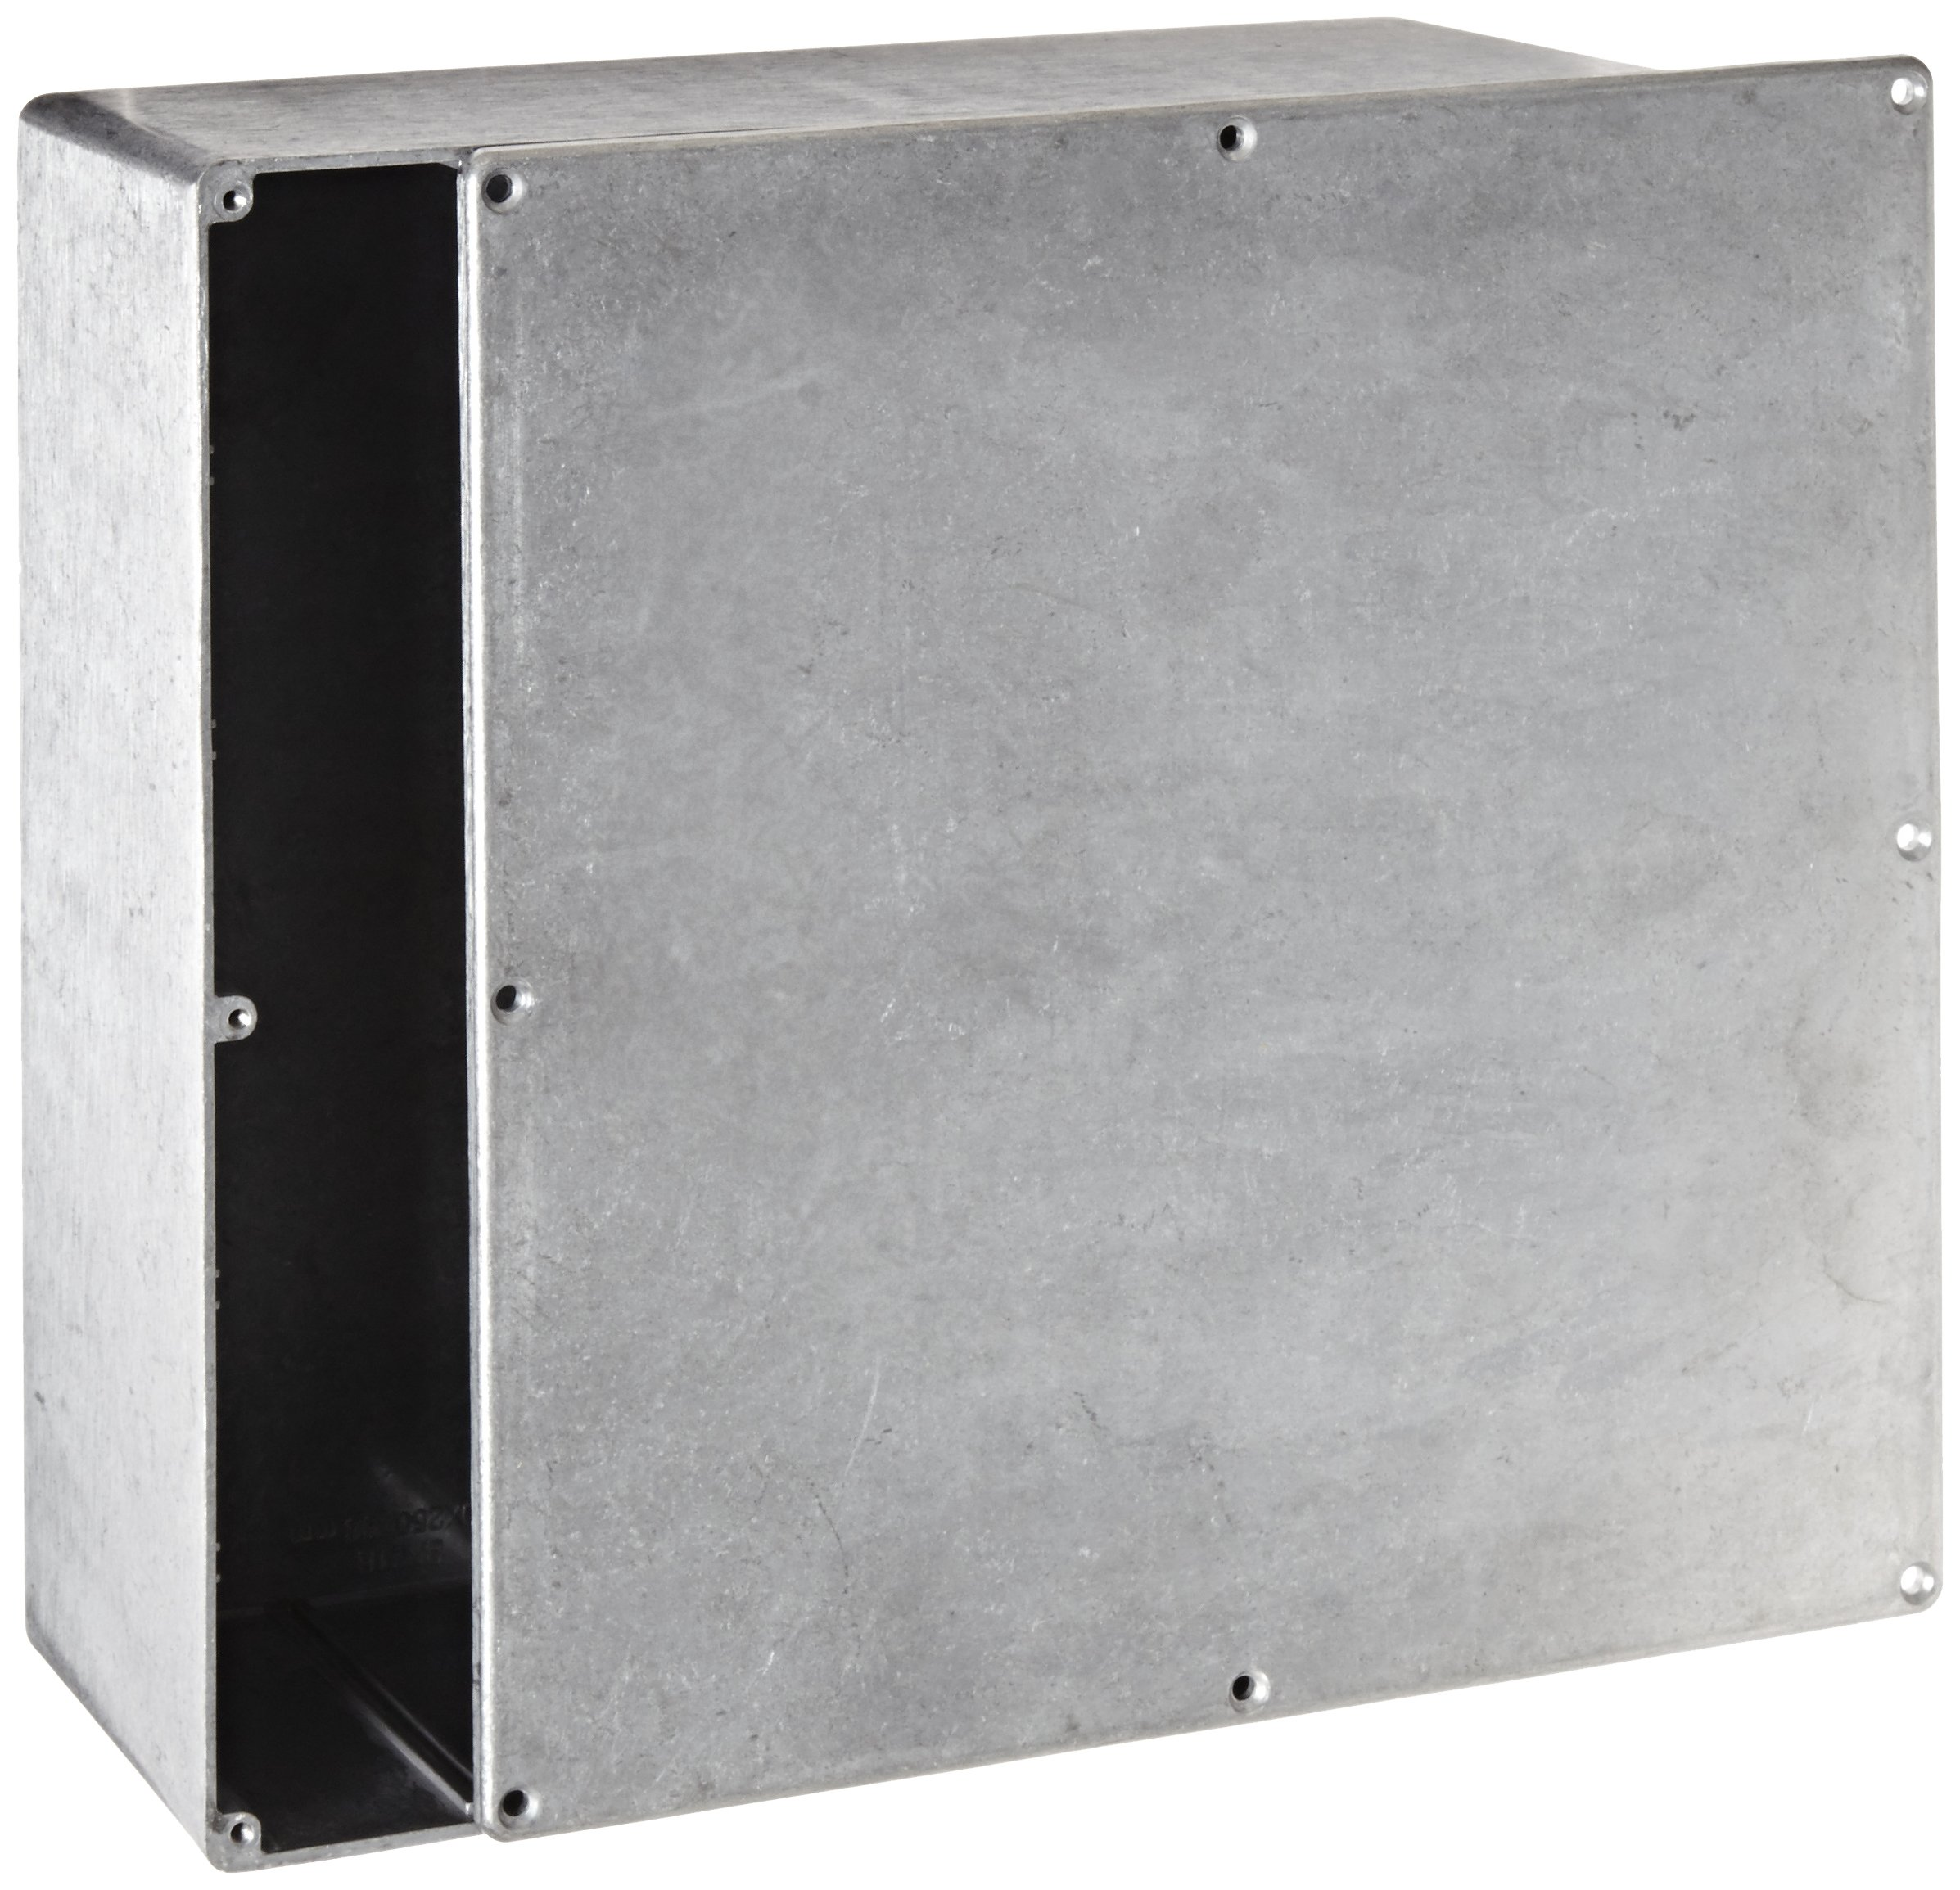 BUD Industries CN-5713 Die Cast Aluminum Enclosure, 9-27/32'' Length x 9-27/32'' Width x 4'' Height, Natural Finish